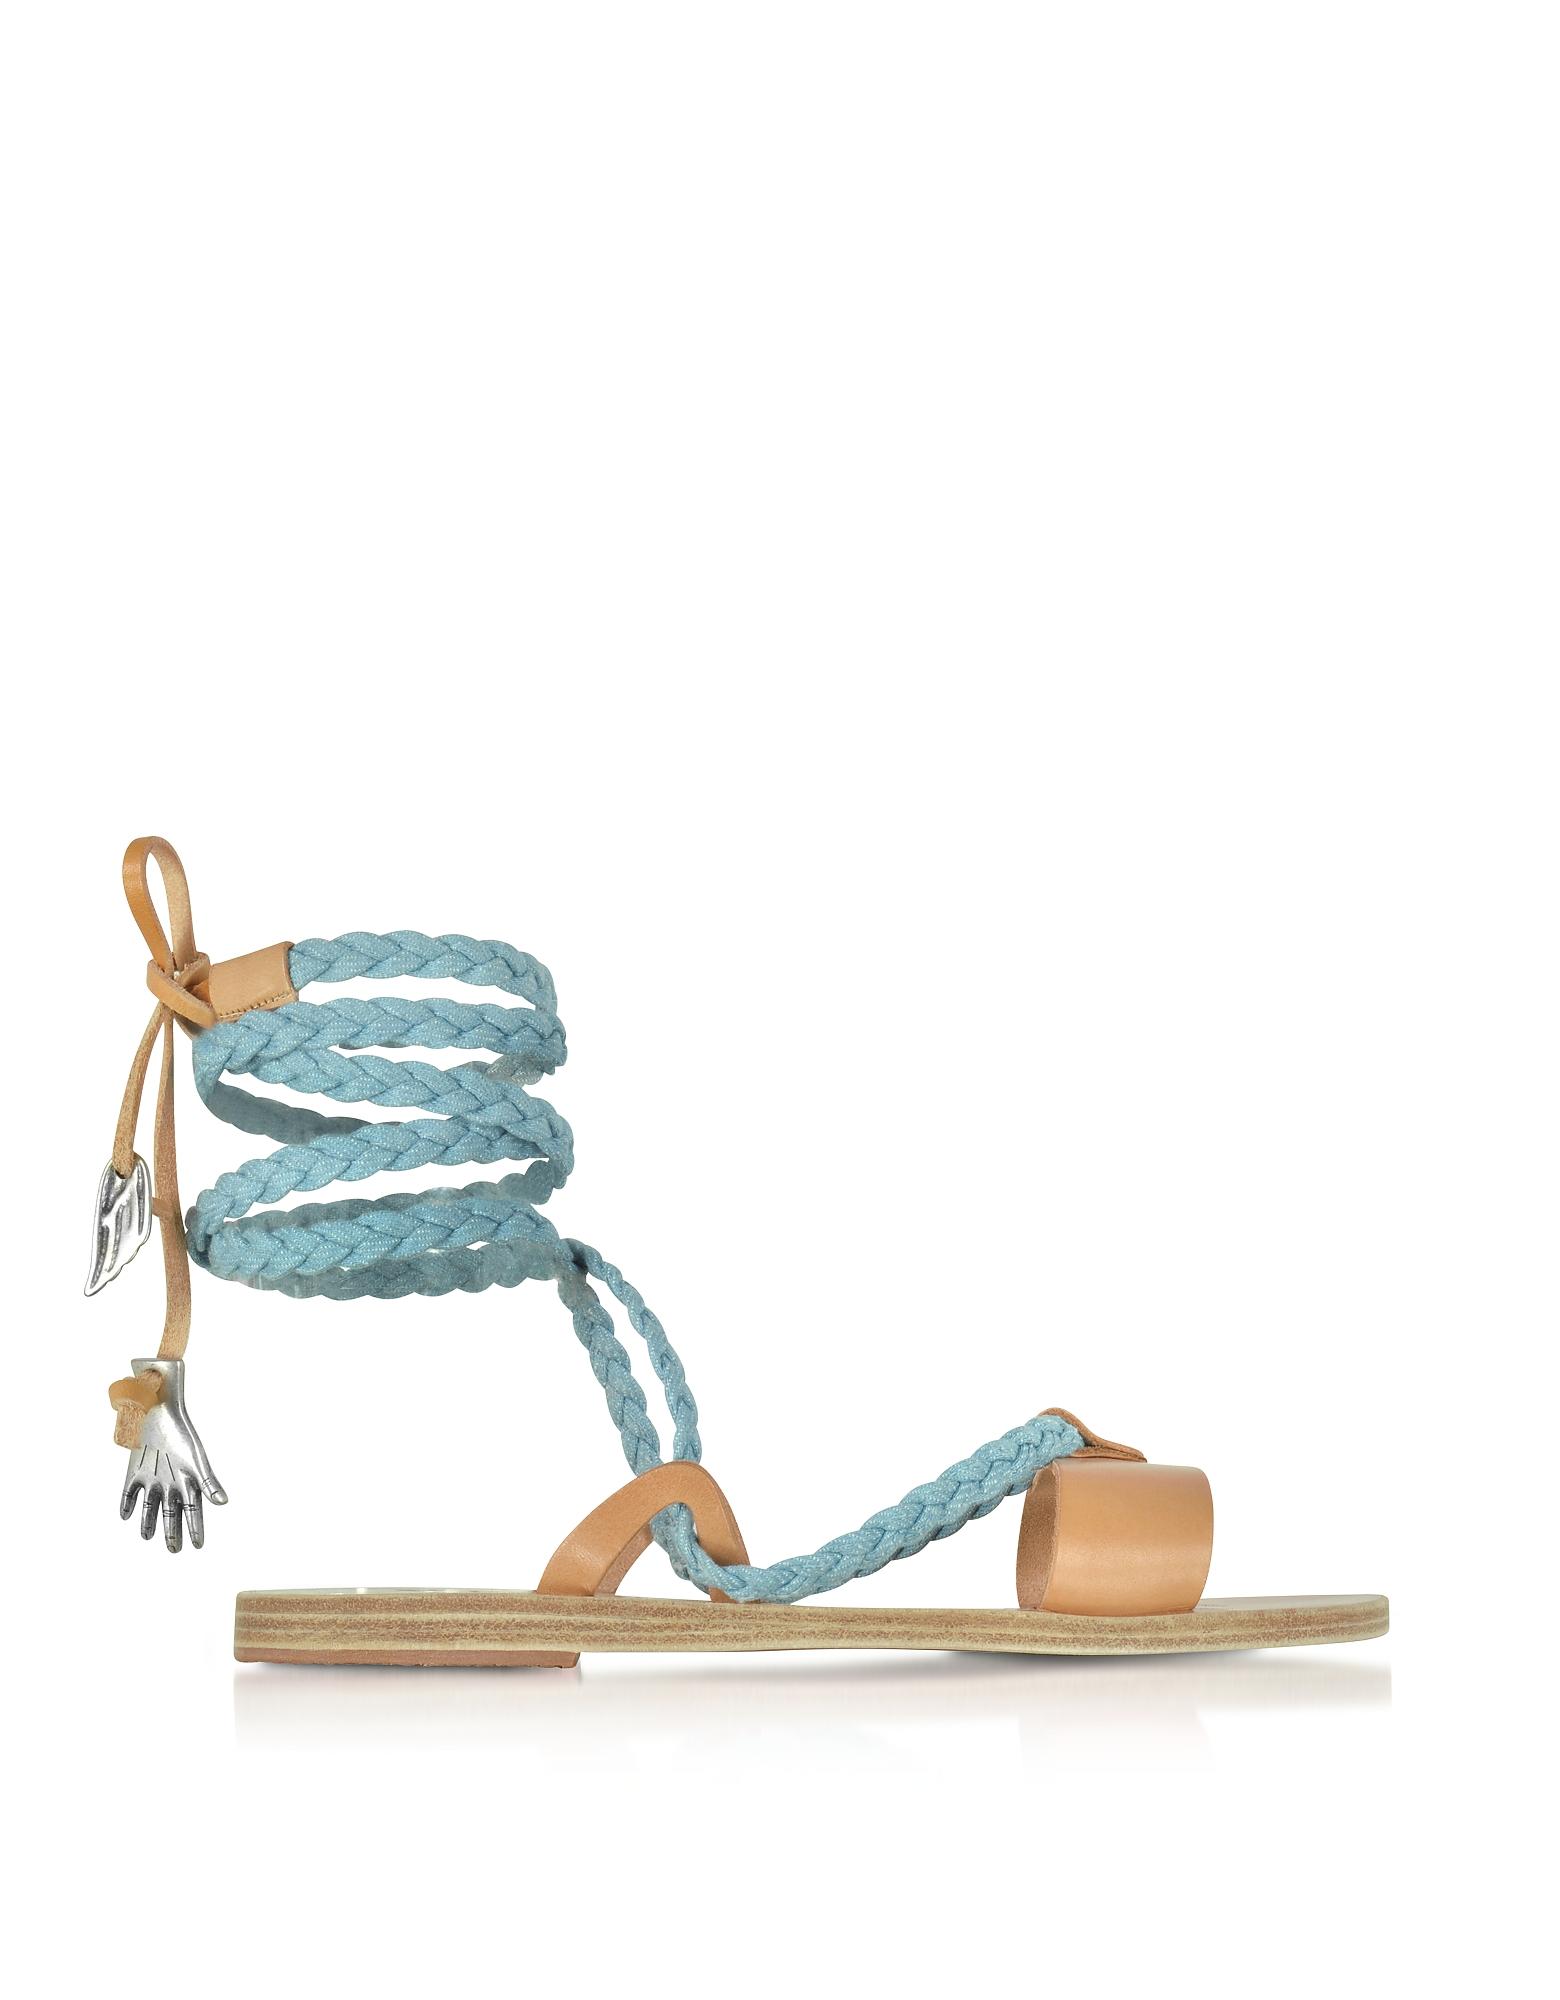 Ancient Greek Sandals Shoes, Lachesis Light Denim and Natural Leather Braided Sandals